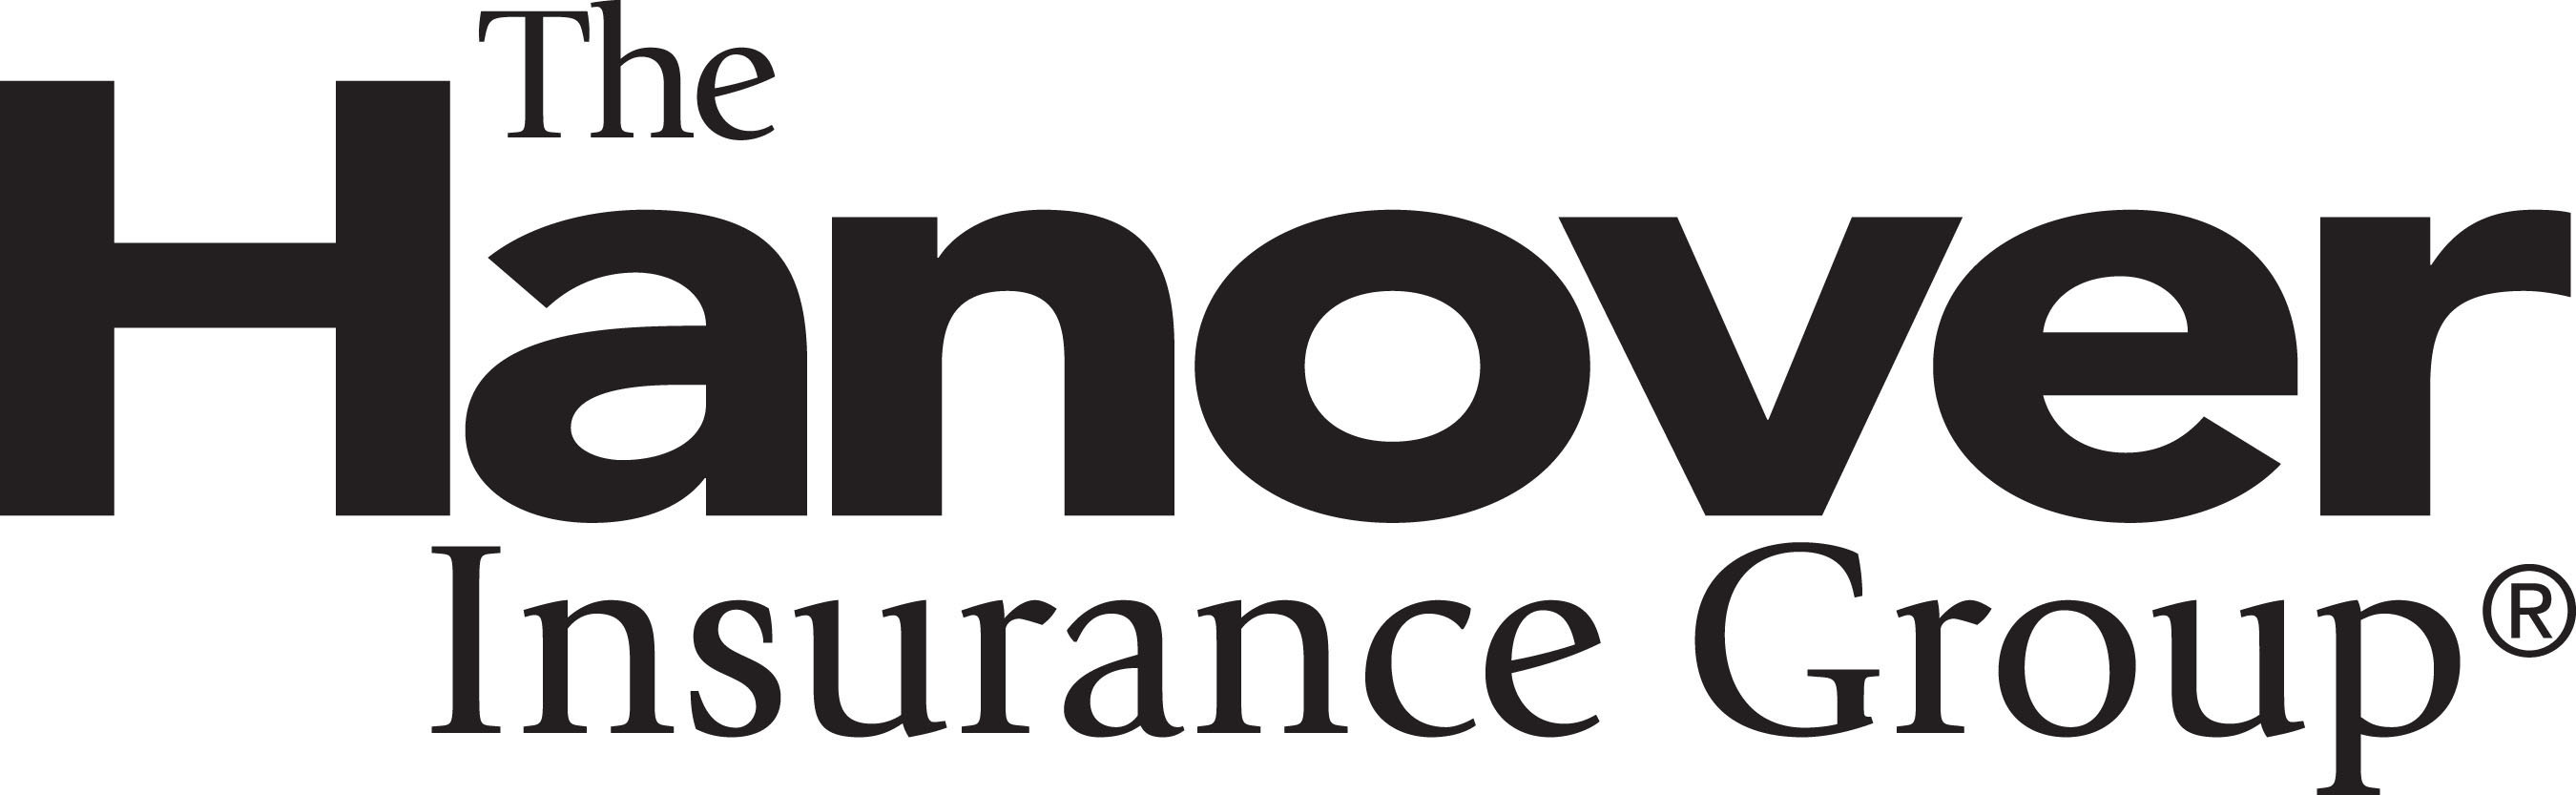 The Hanover Insurance Group Inc To Issue Third Quarter